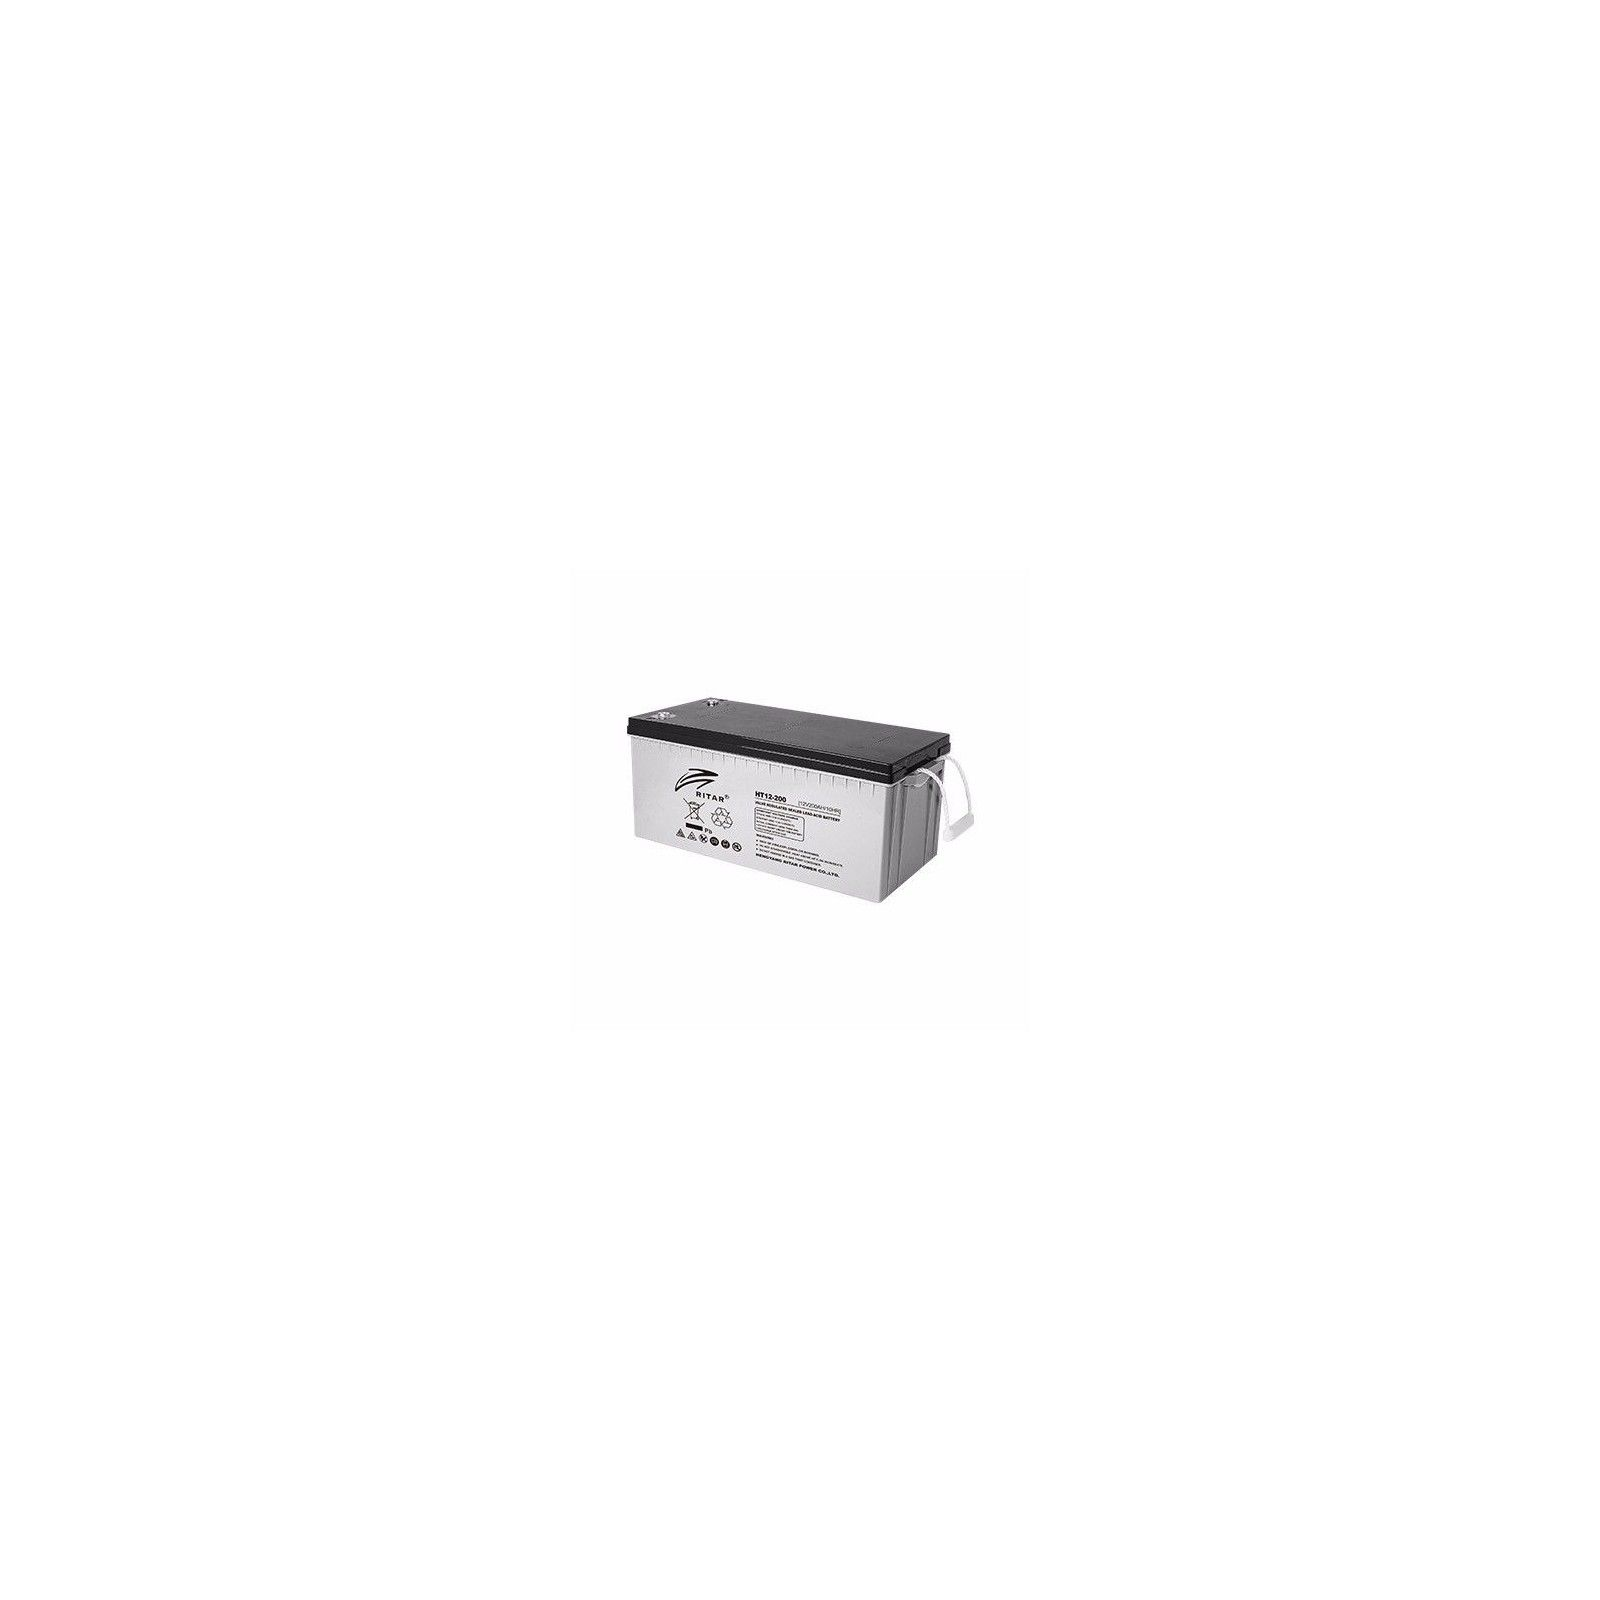 BATTERY RITAR RT613 6V 1,3AH  - 1